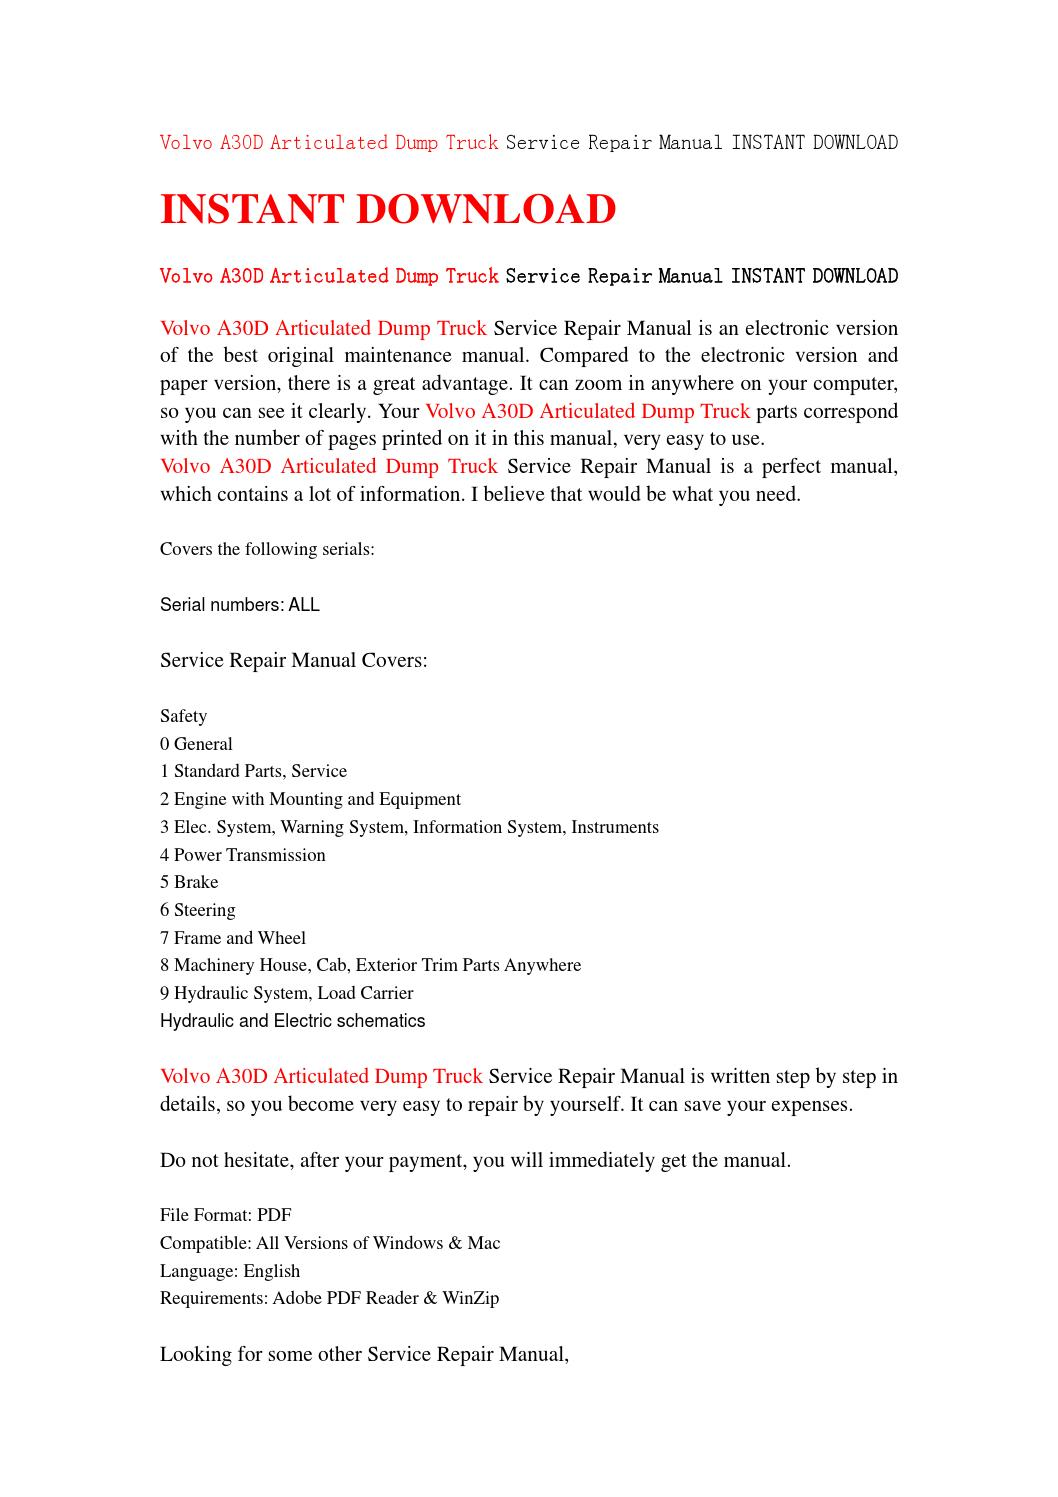 Volvo a30d articulated dump truck service repair manual instant download by  jfhsefjse - issuu